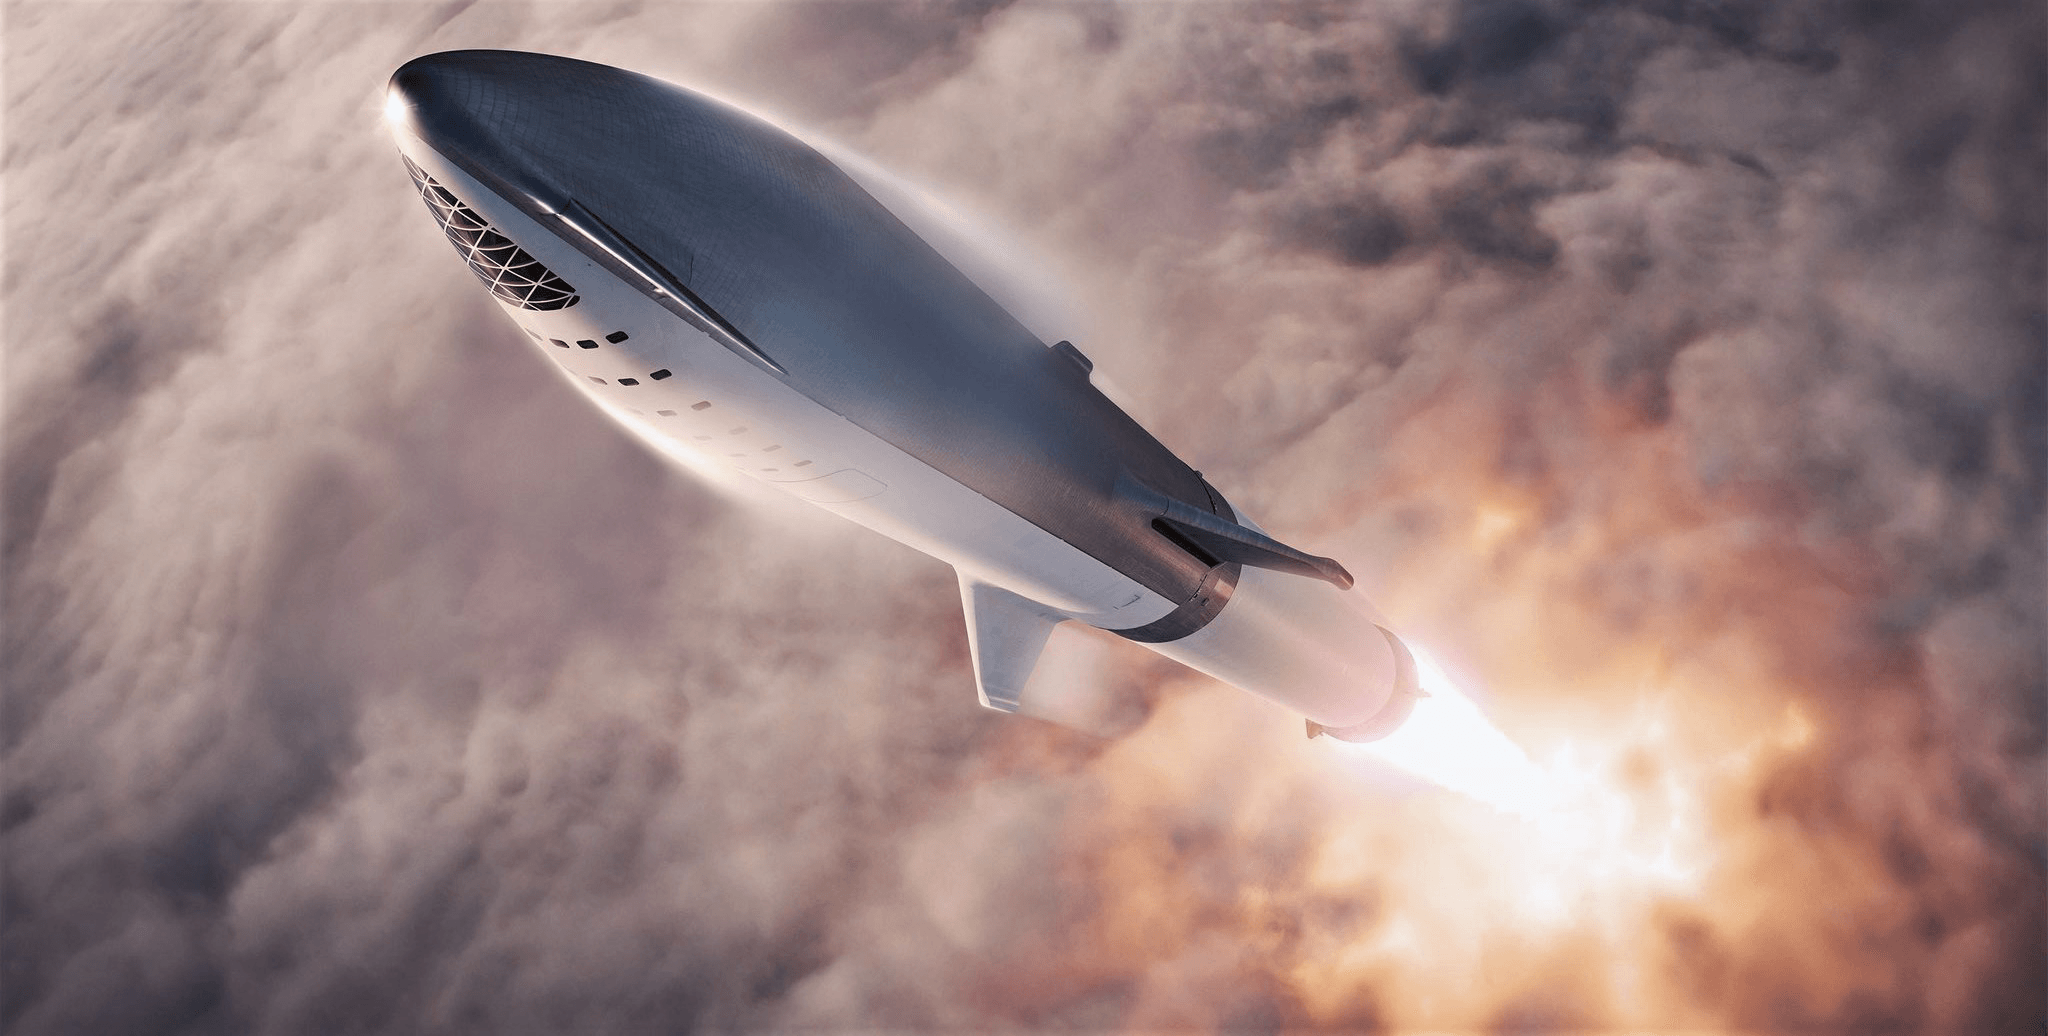 Spacex Ceo Elon Musk Teases Bfr Update With New Rocket Launch Renders